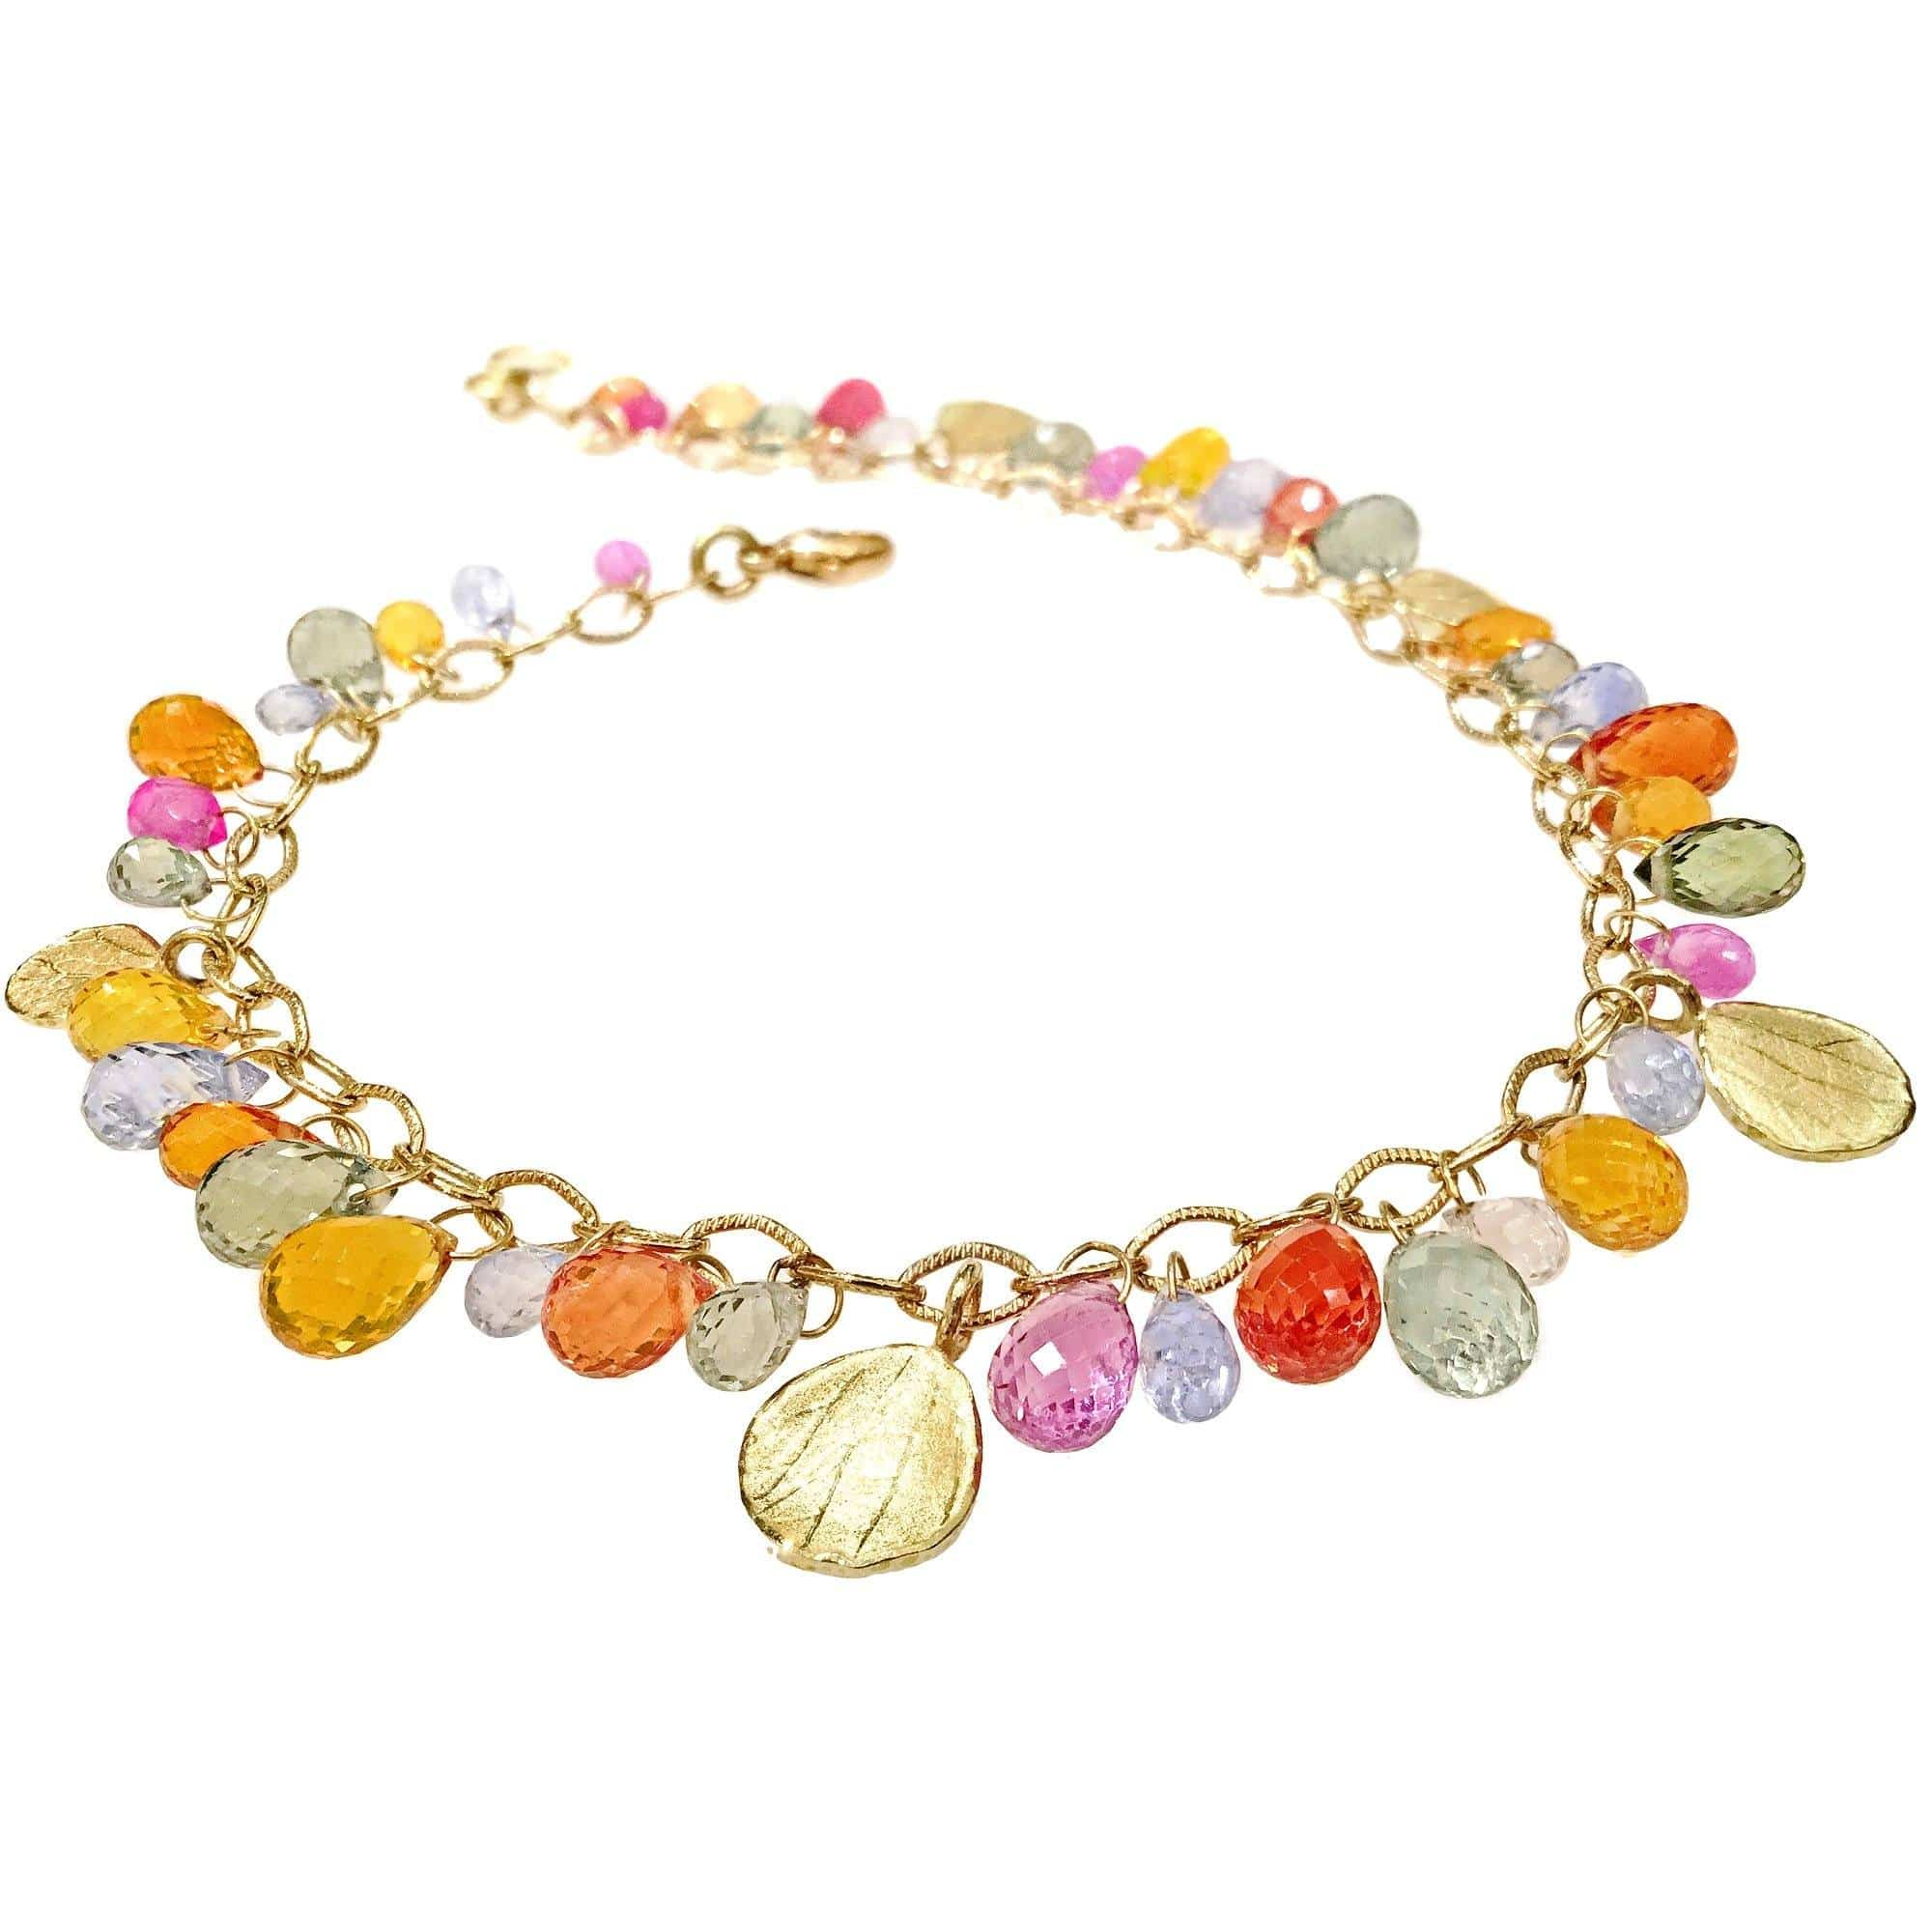 jewelers briolette shop copeland briolettes shans necklace color multi sapphire